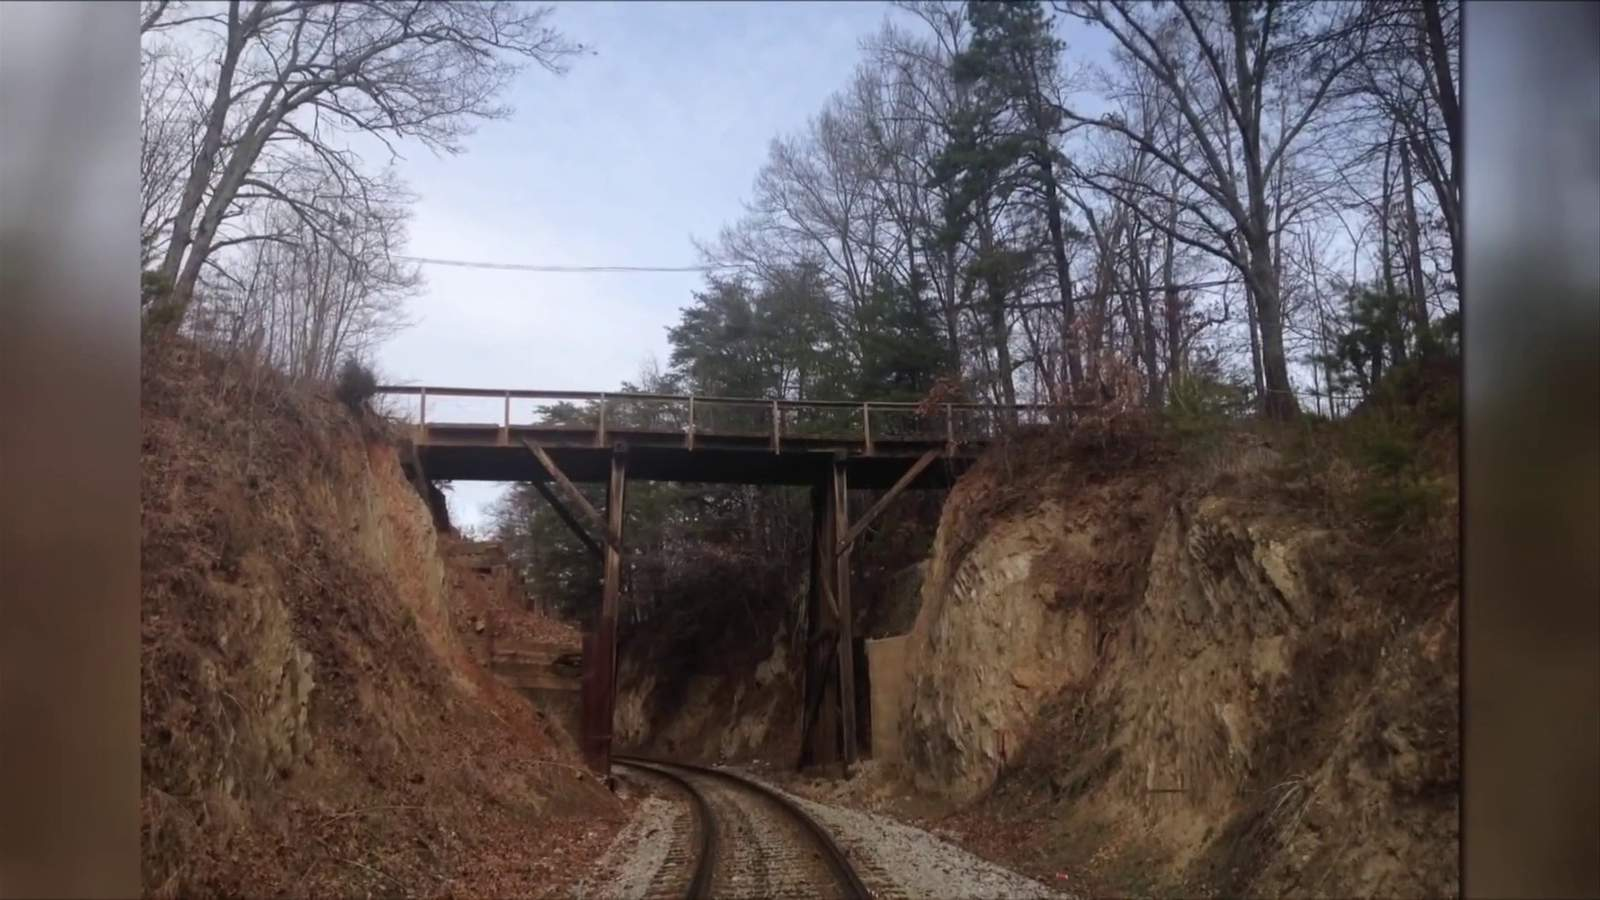 'If it's life and death, can they make it?': Aging bridge stands between Franklin County residents and first responders